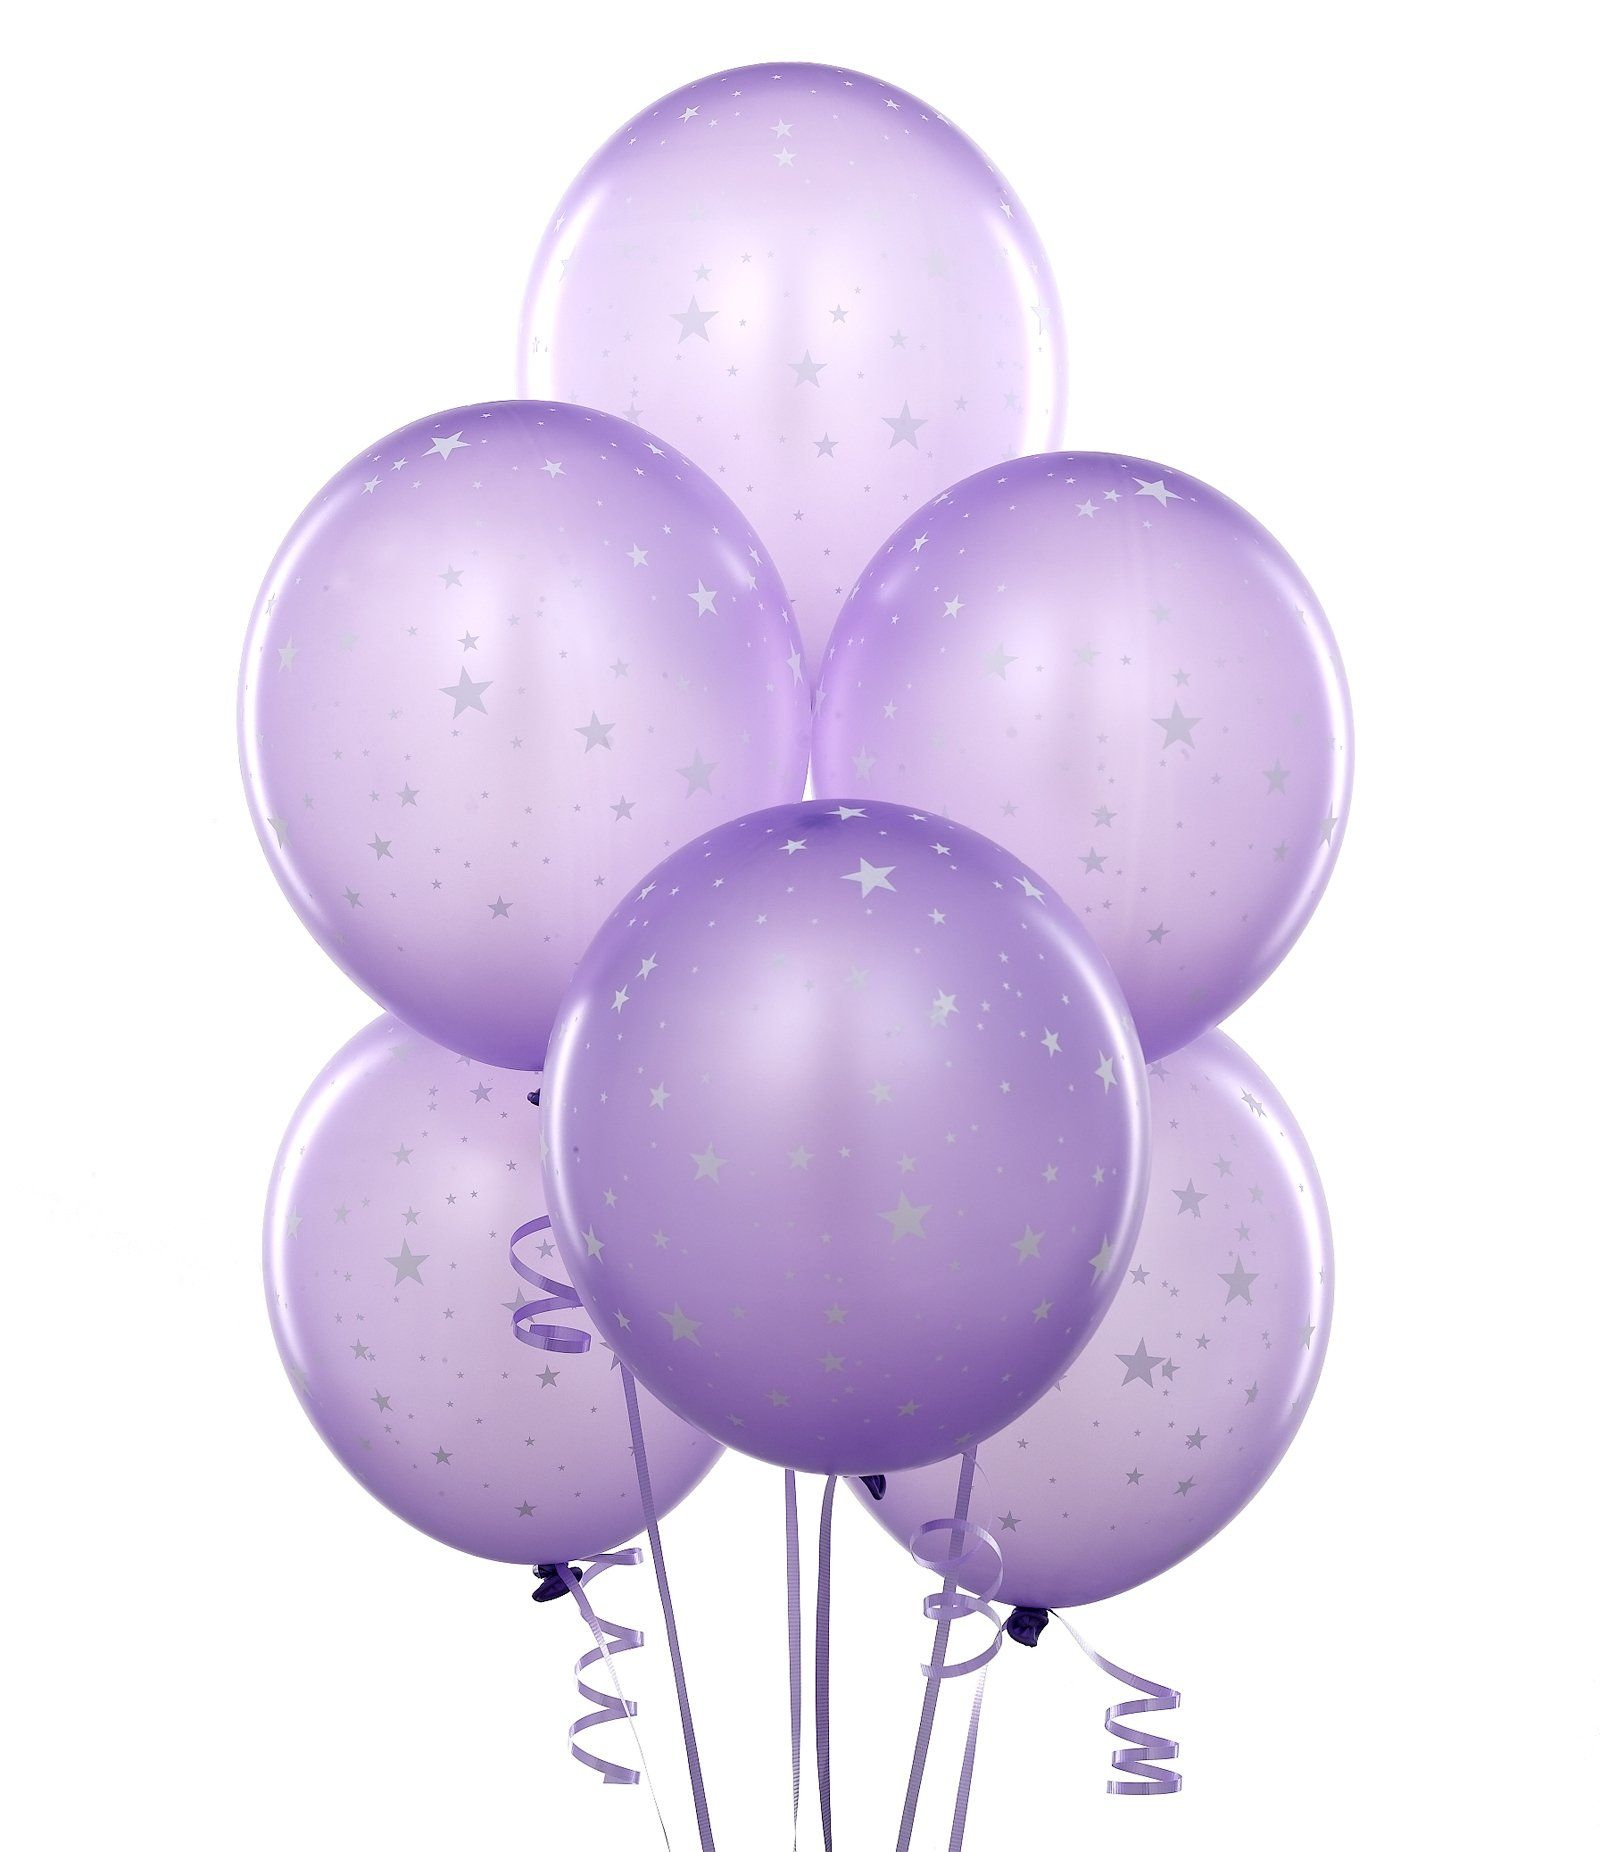 Lavender Balloons With Stars Purple Balloons Transparent